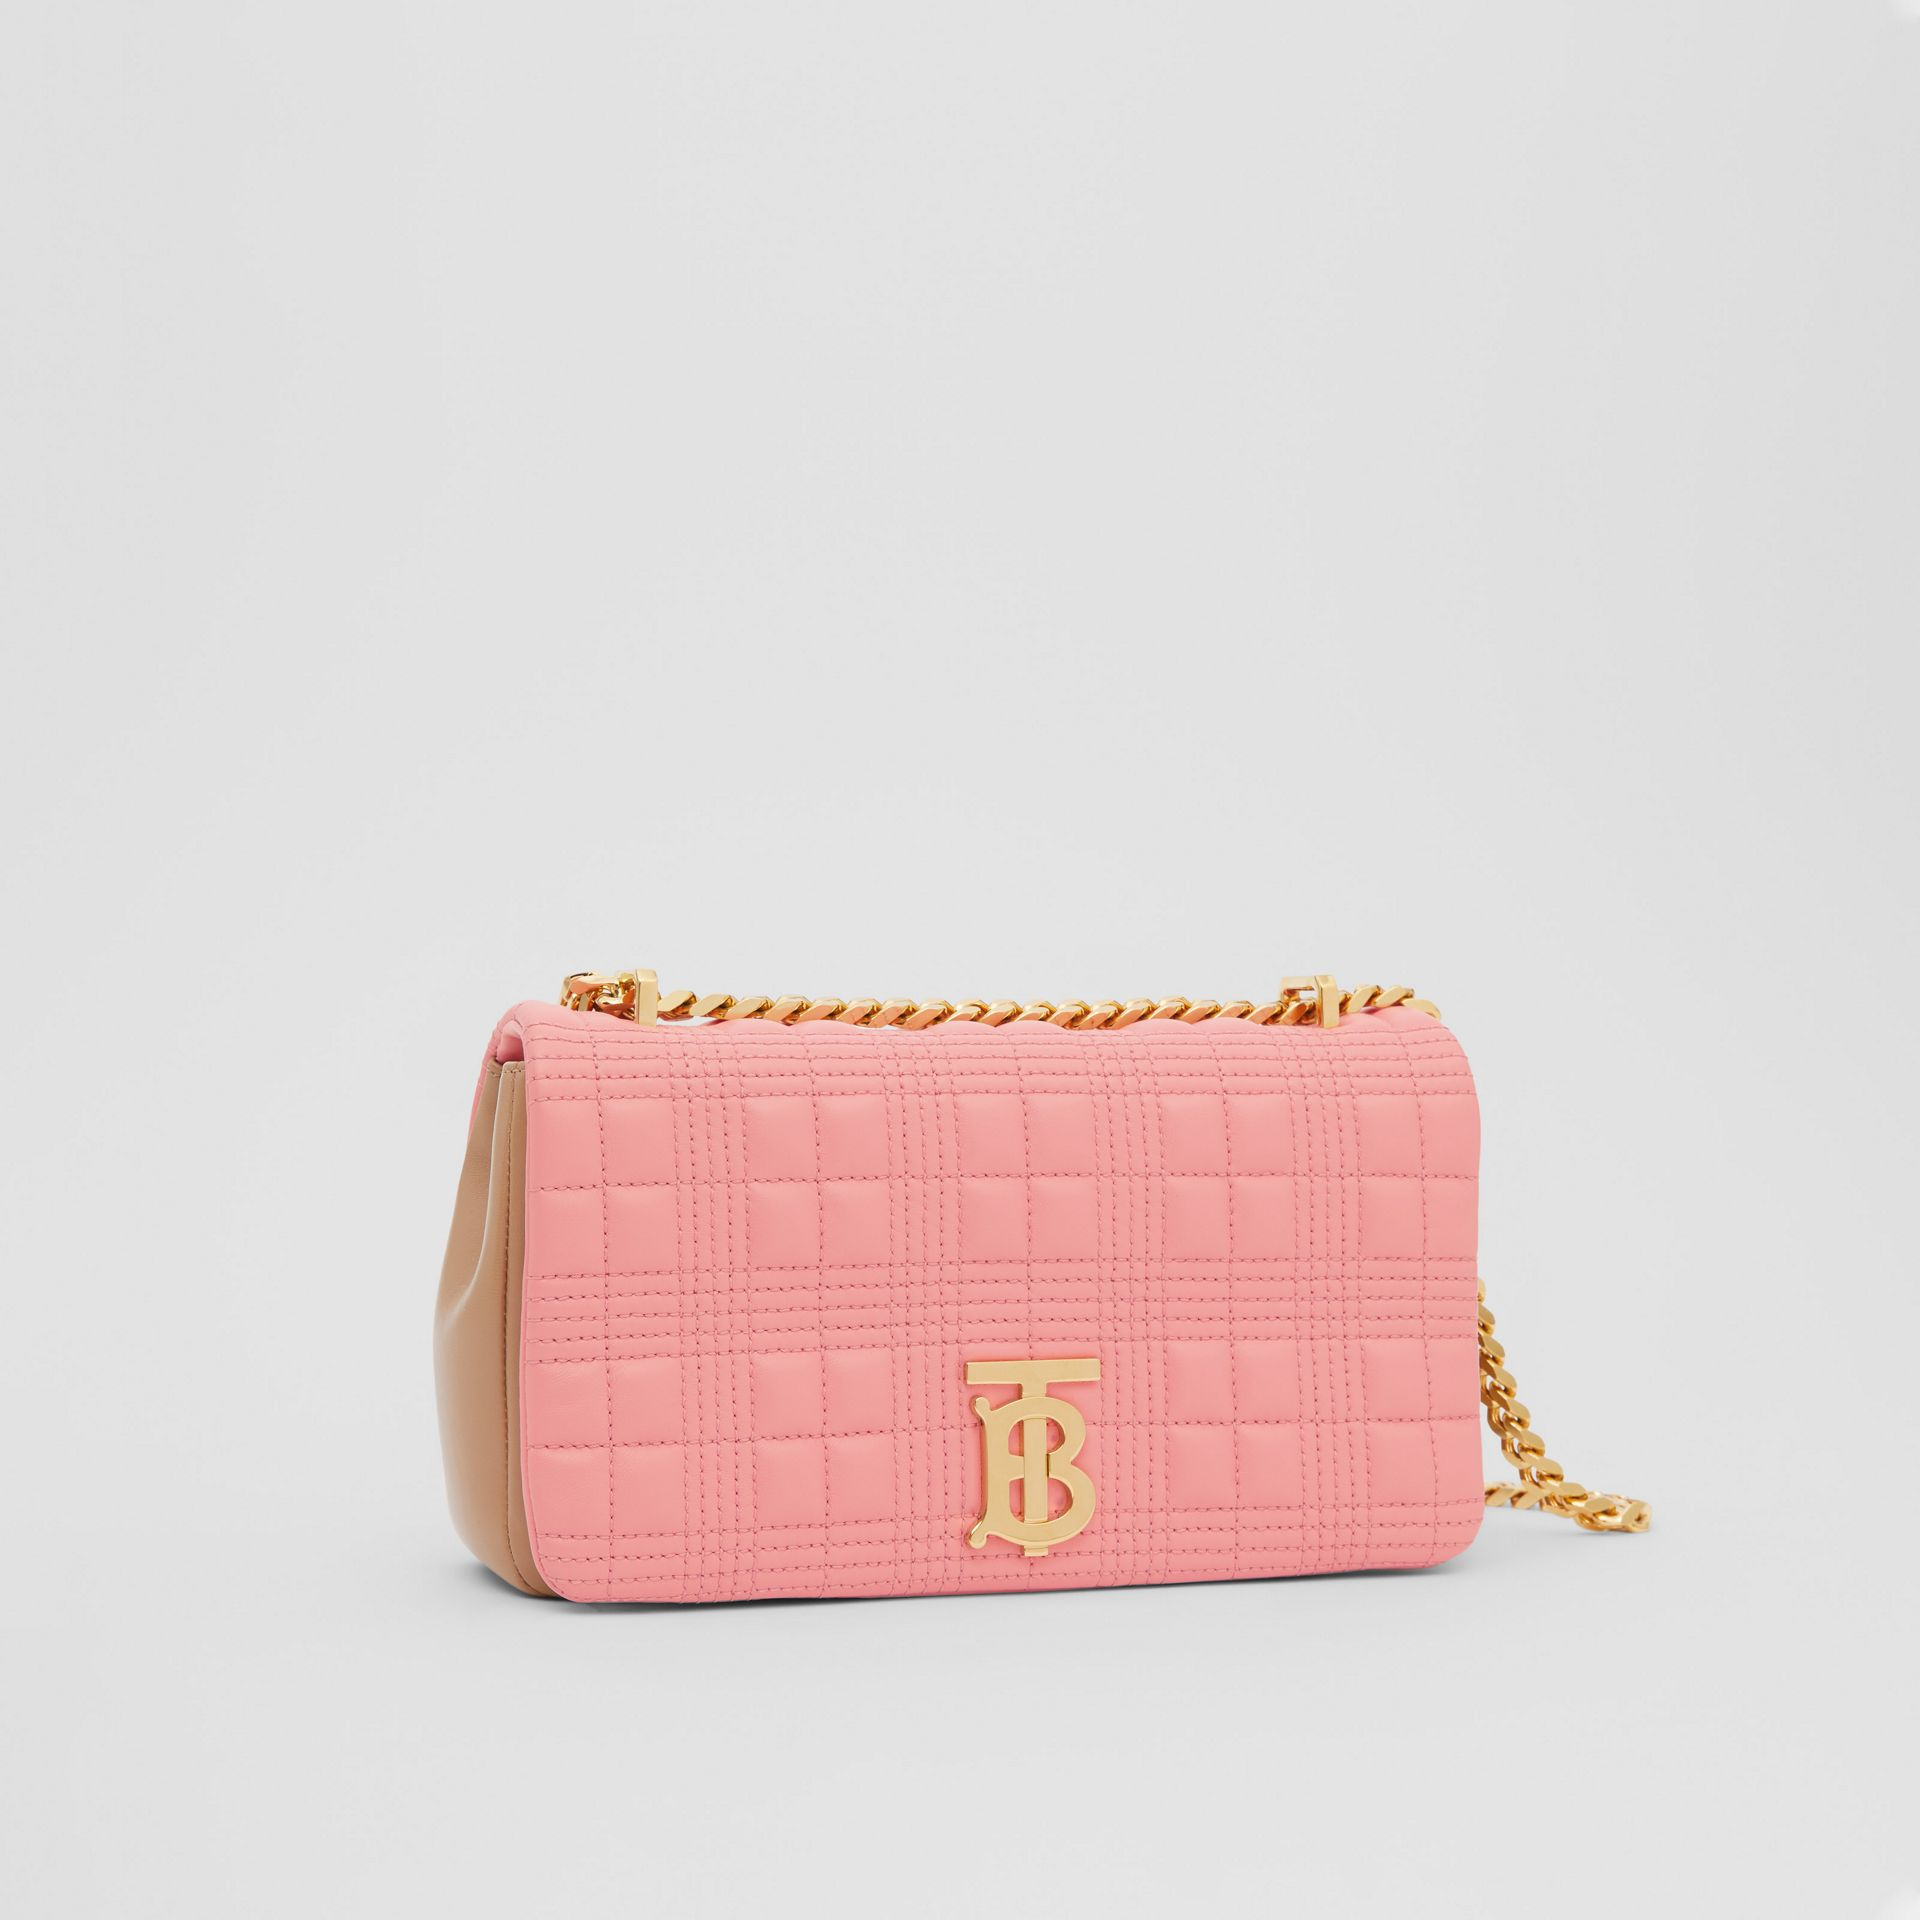 Small Quilted Two-tone Lambskin Lola Bag in Peony/camel - Women | Burberry - gallery image 6